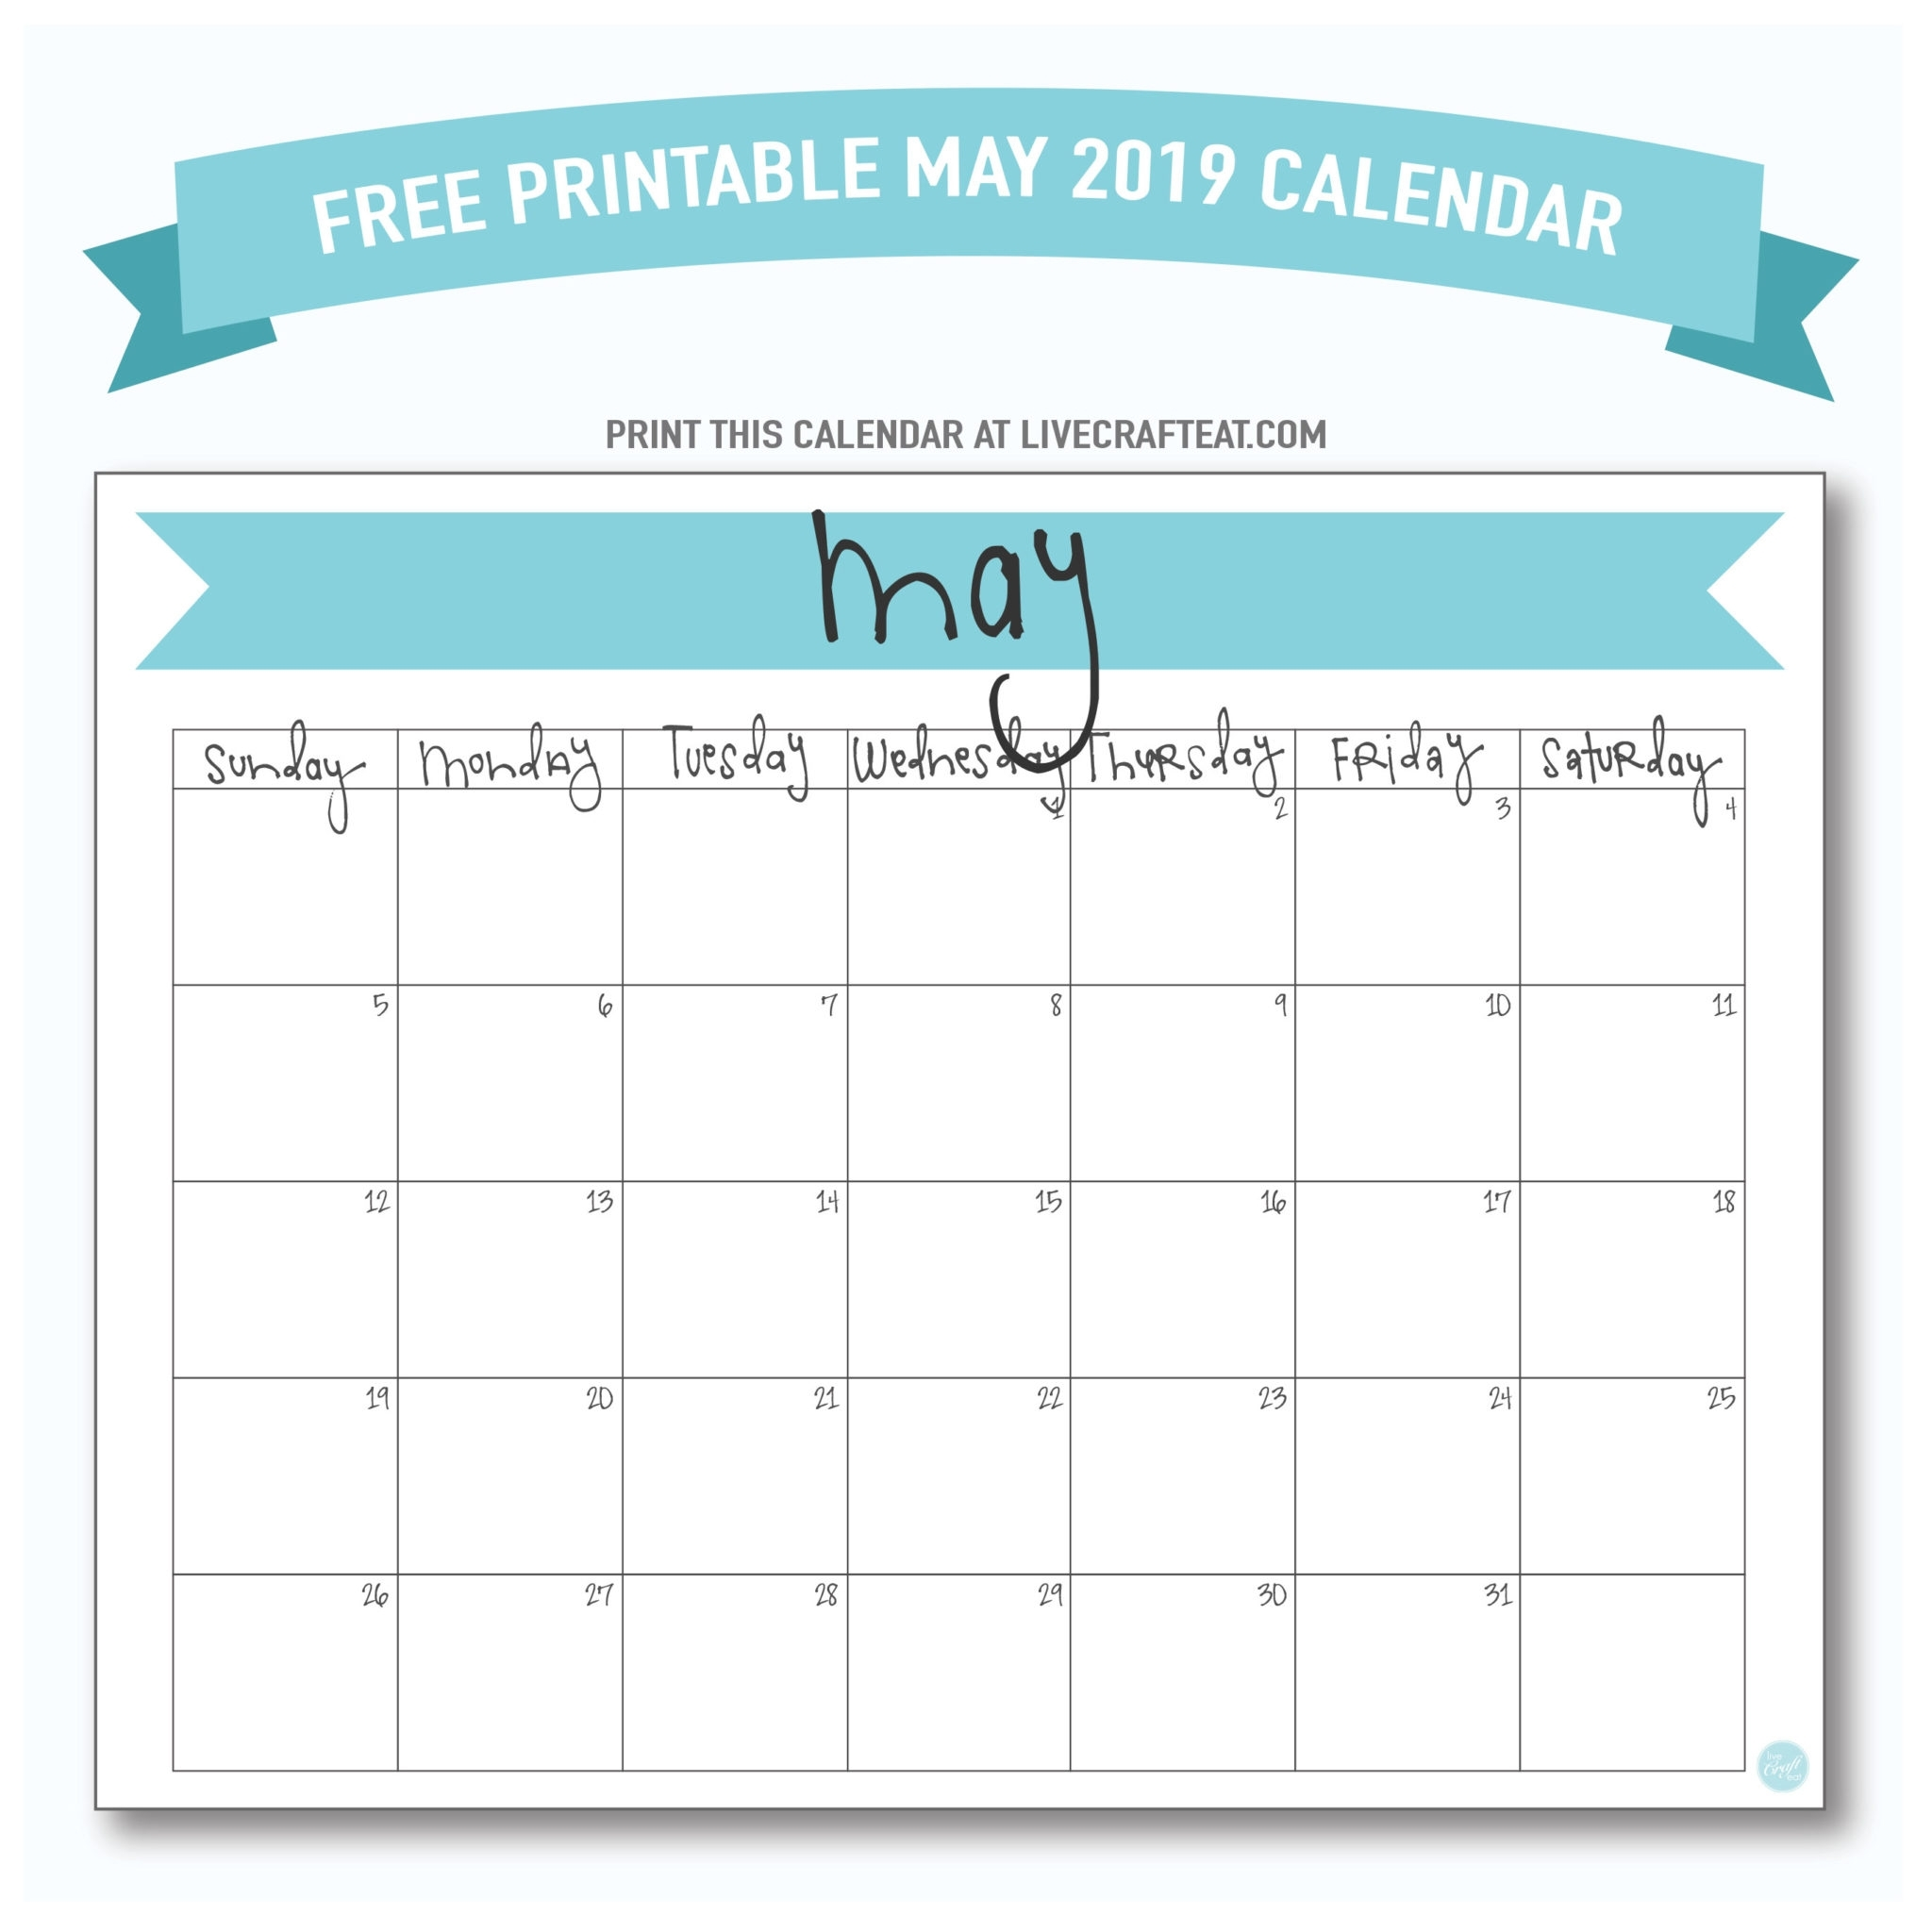 May 2019 Calendar - Free Printable | Live Craft Eat with Free 8.5 X 11 Calendars